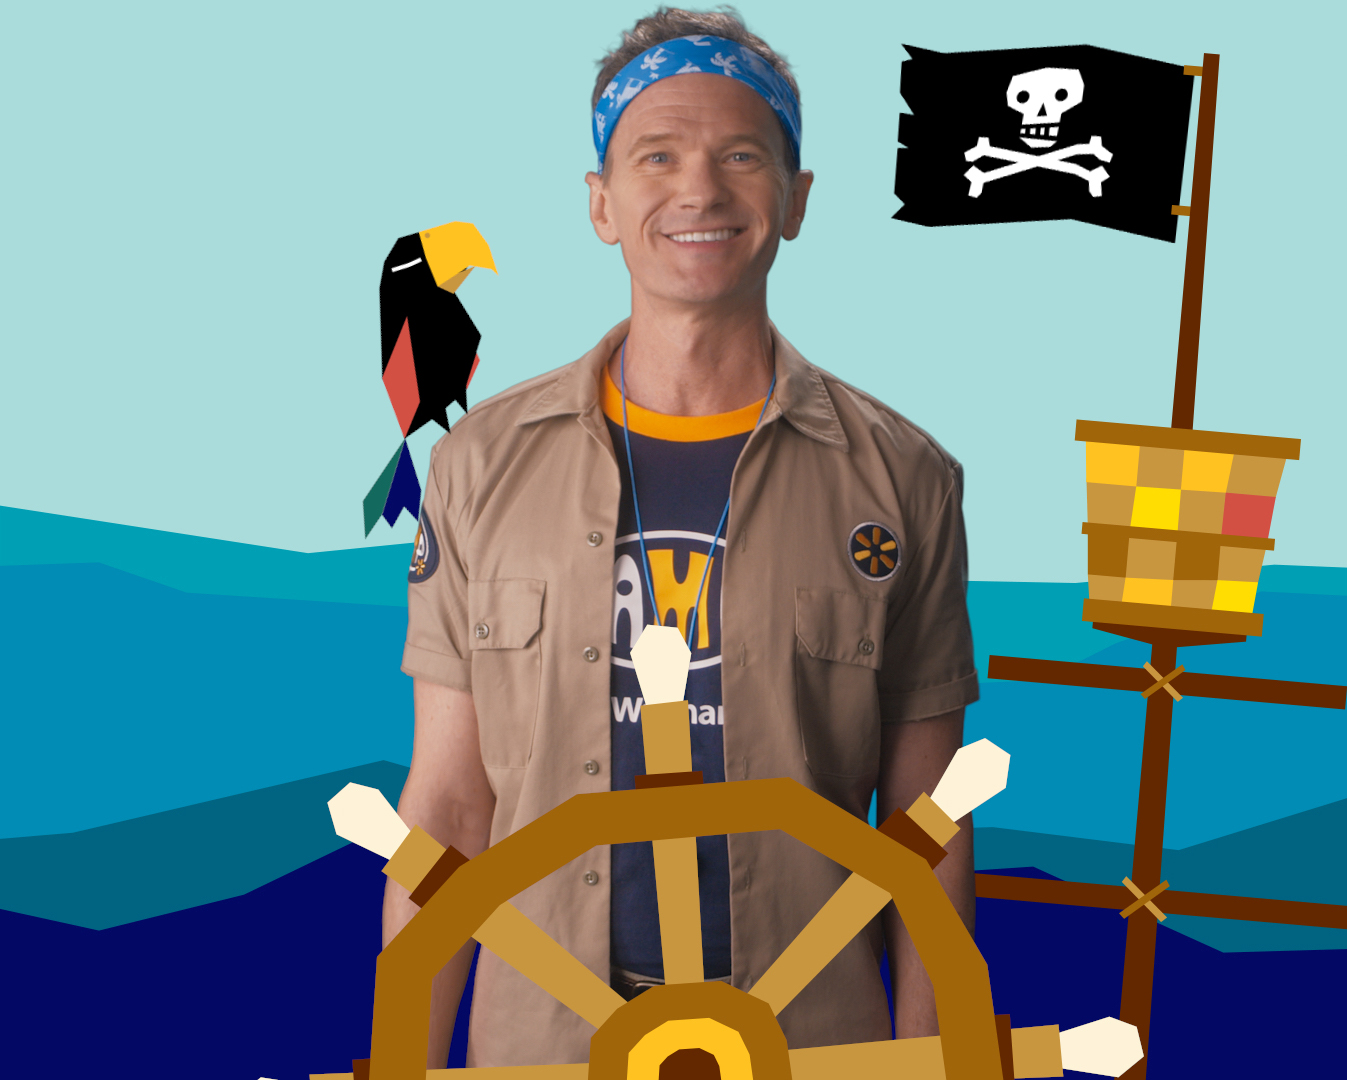 Walmart-camp-by-walmart-neil-patrick-harris.jpeg